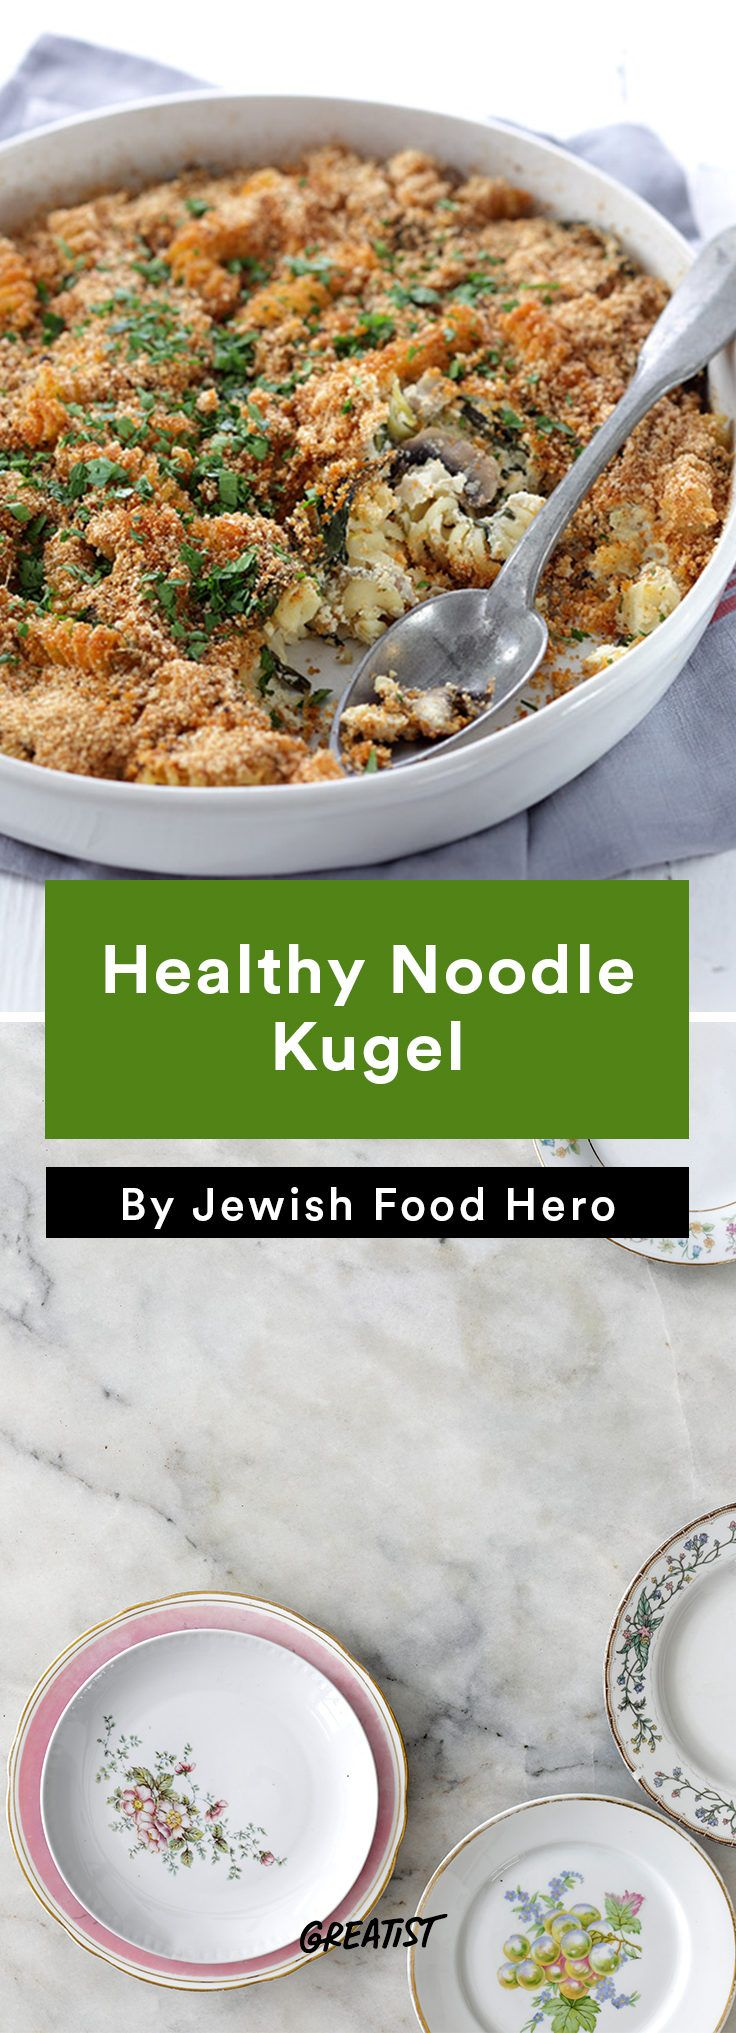 4. Healthy Noodle Kugel #vegetarian #kosher #recipes http://greatist.com/eat/jewish-food-recipes-that-revamp-the-classics